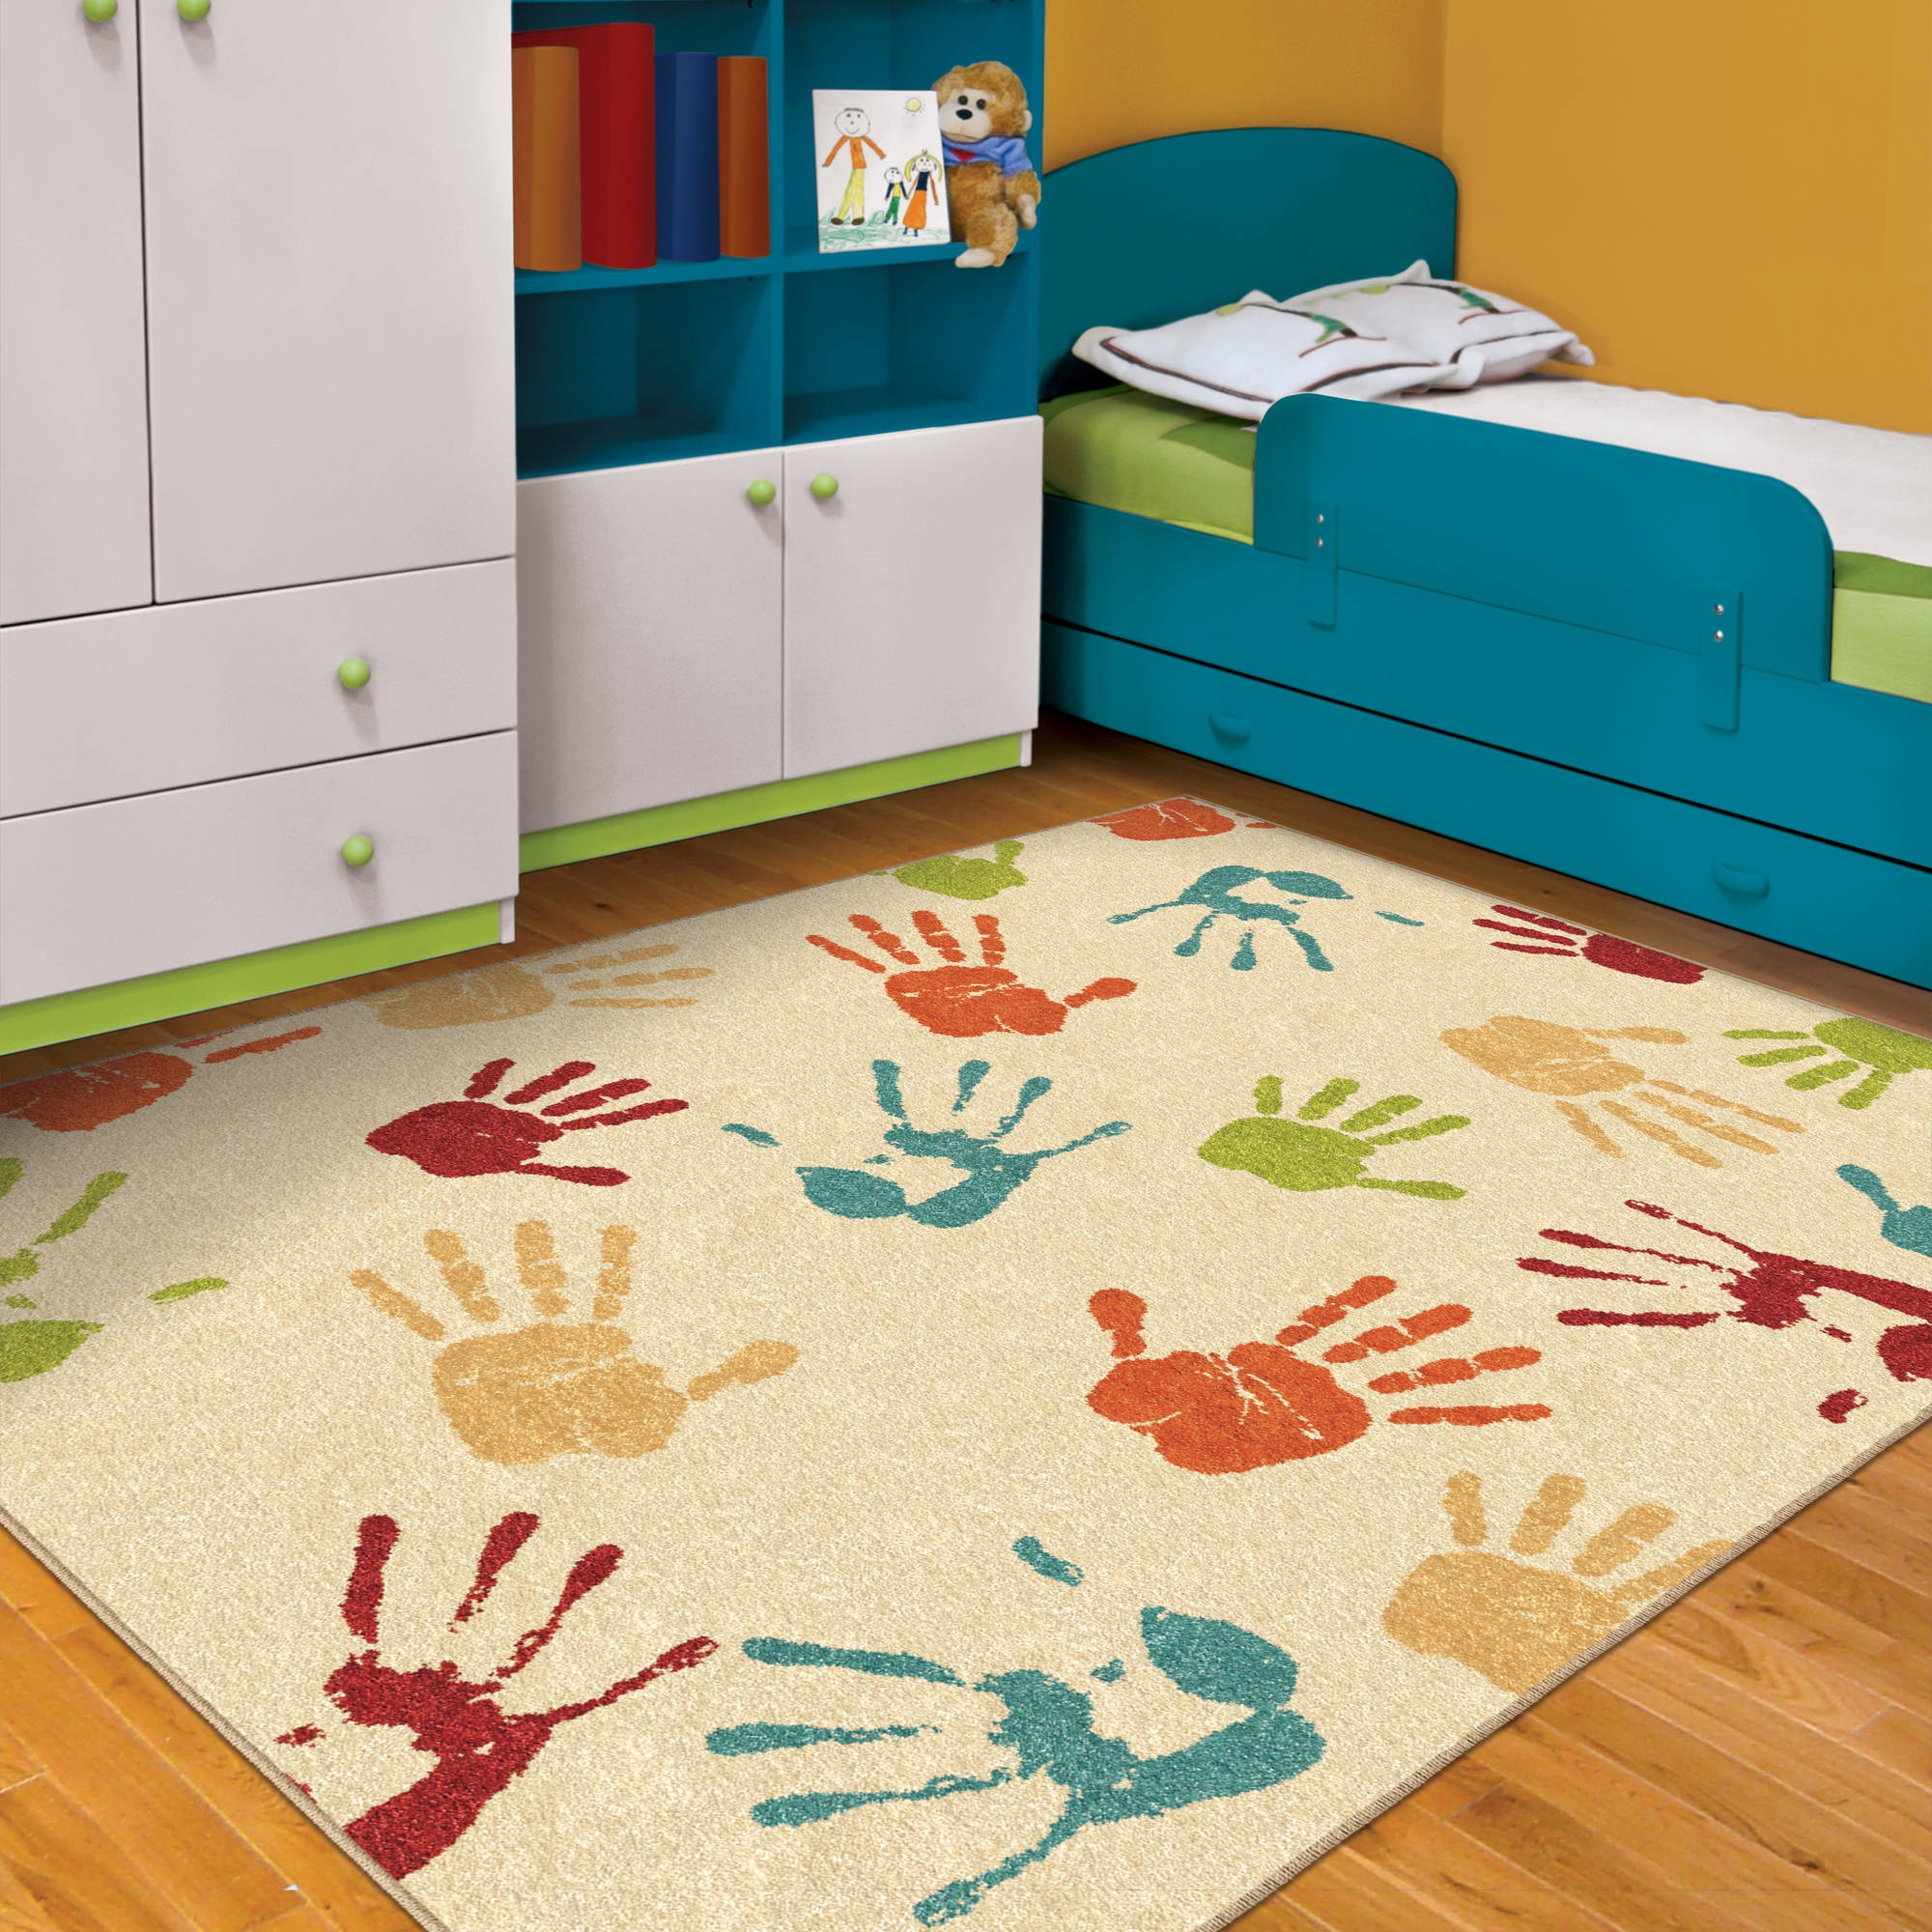 Orian Handprints Fun Kids Area Rug Walmart Regarding Children Rugs (Image 12 of 15)